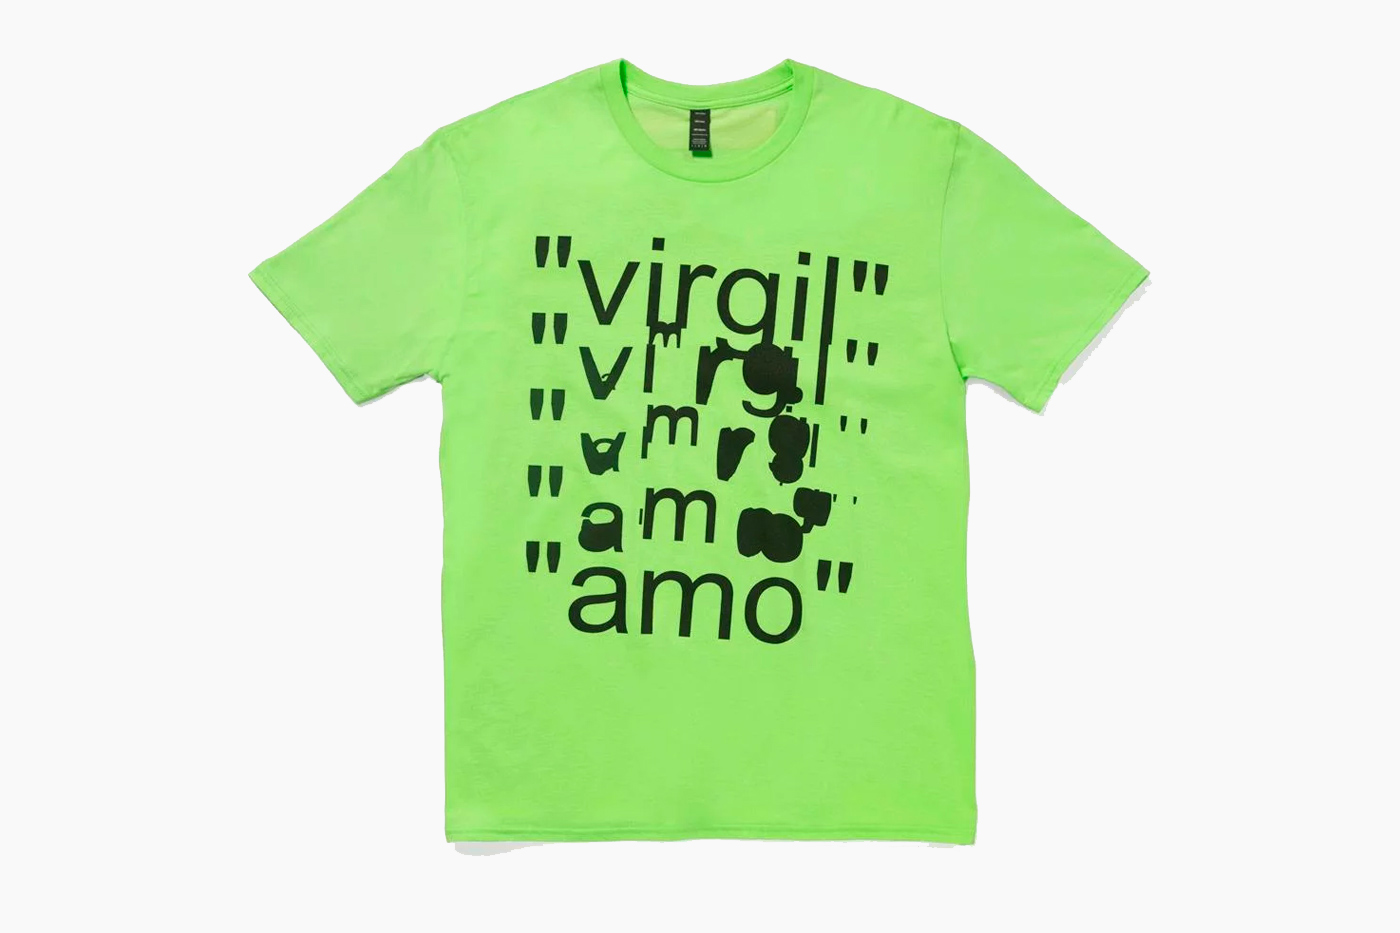 MCA Chicago x Virgil Abloh Neon-Colored Apparel